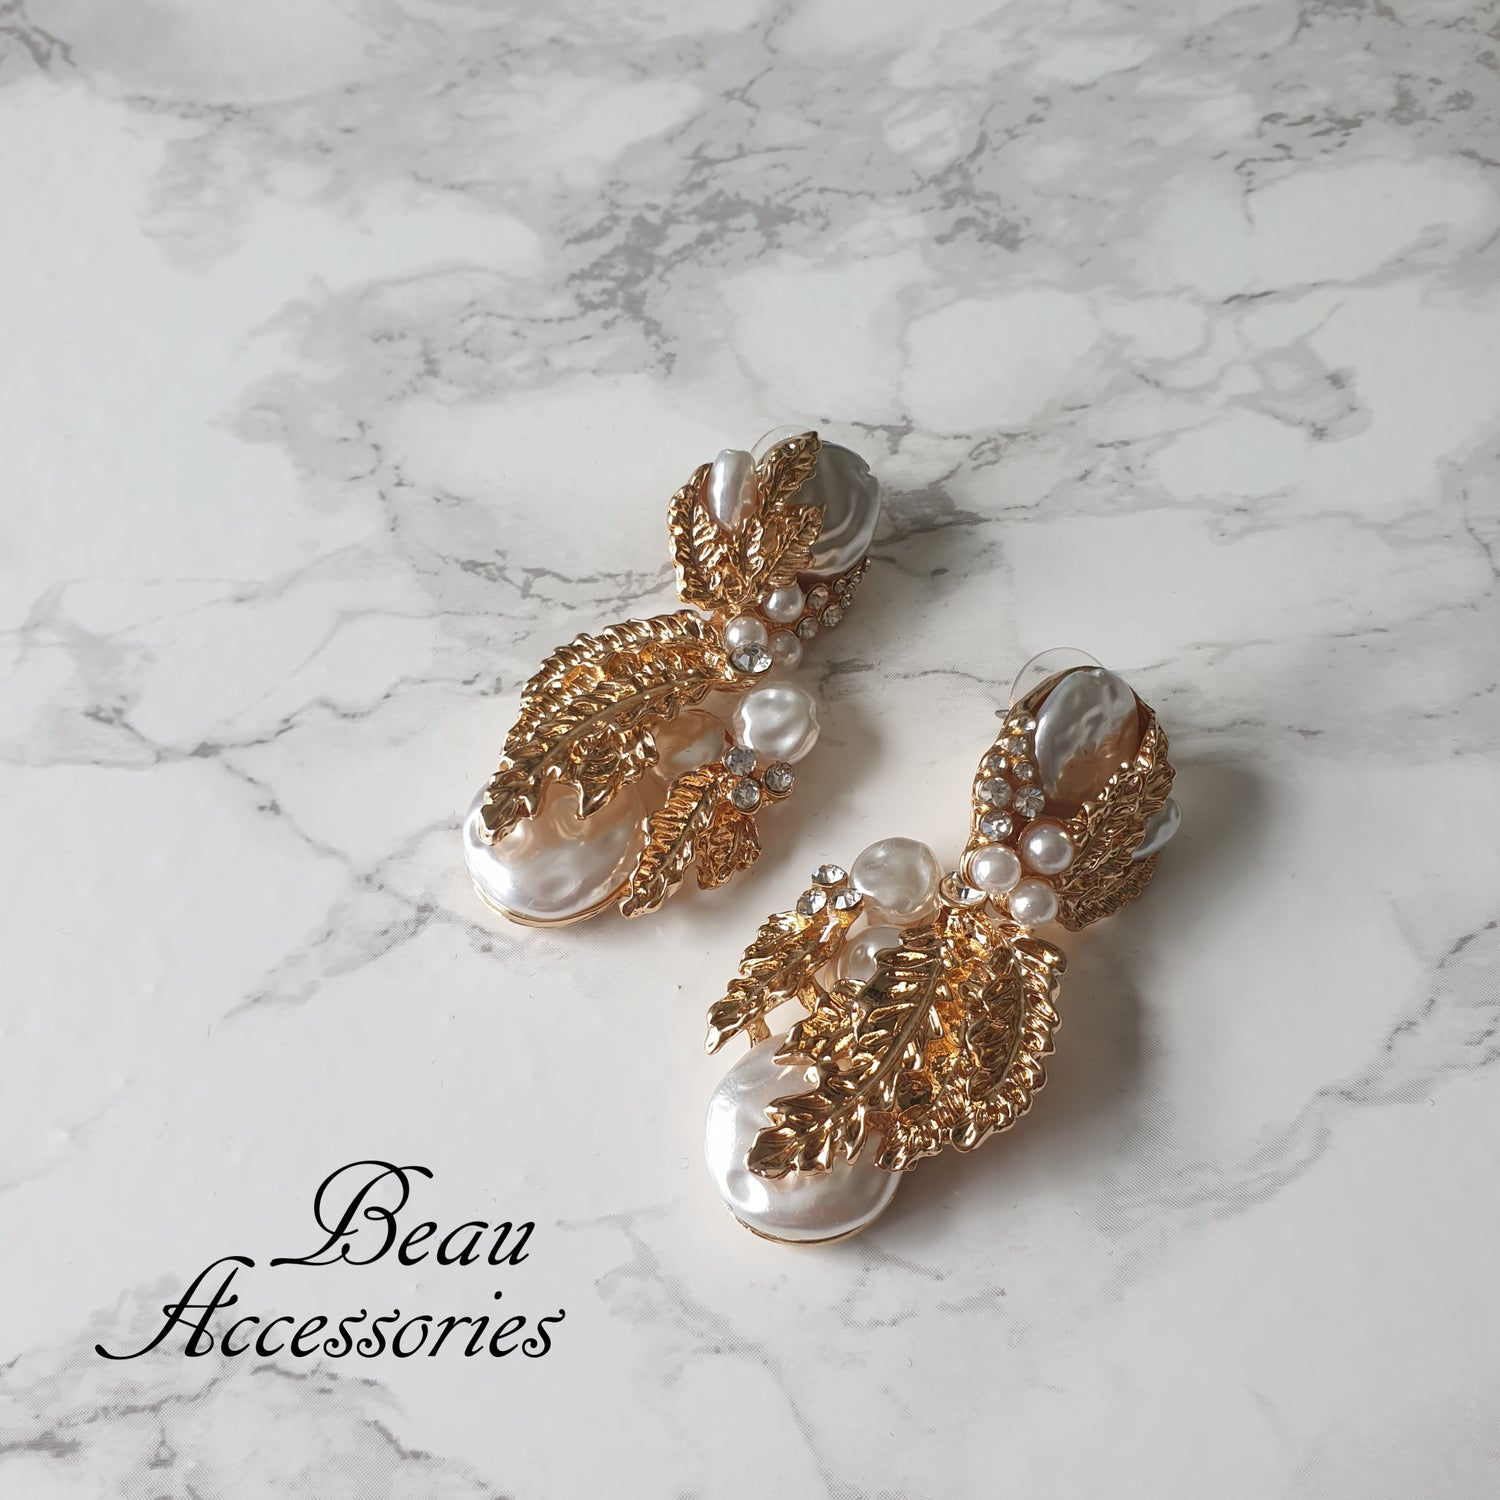 Image of Golden Statement Earrings with Pearls